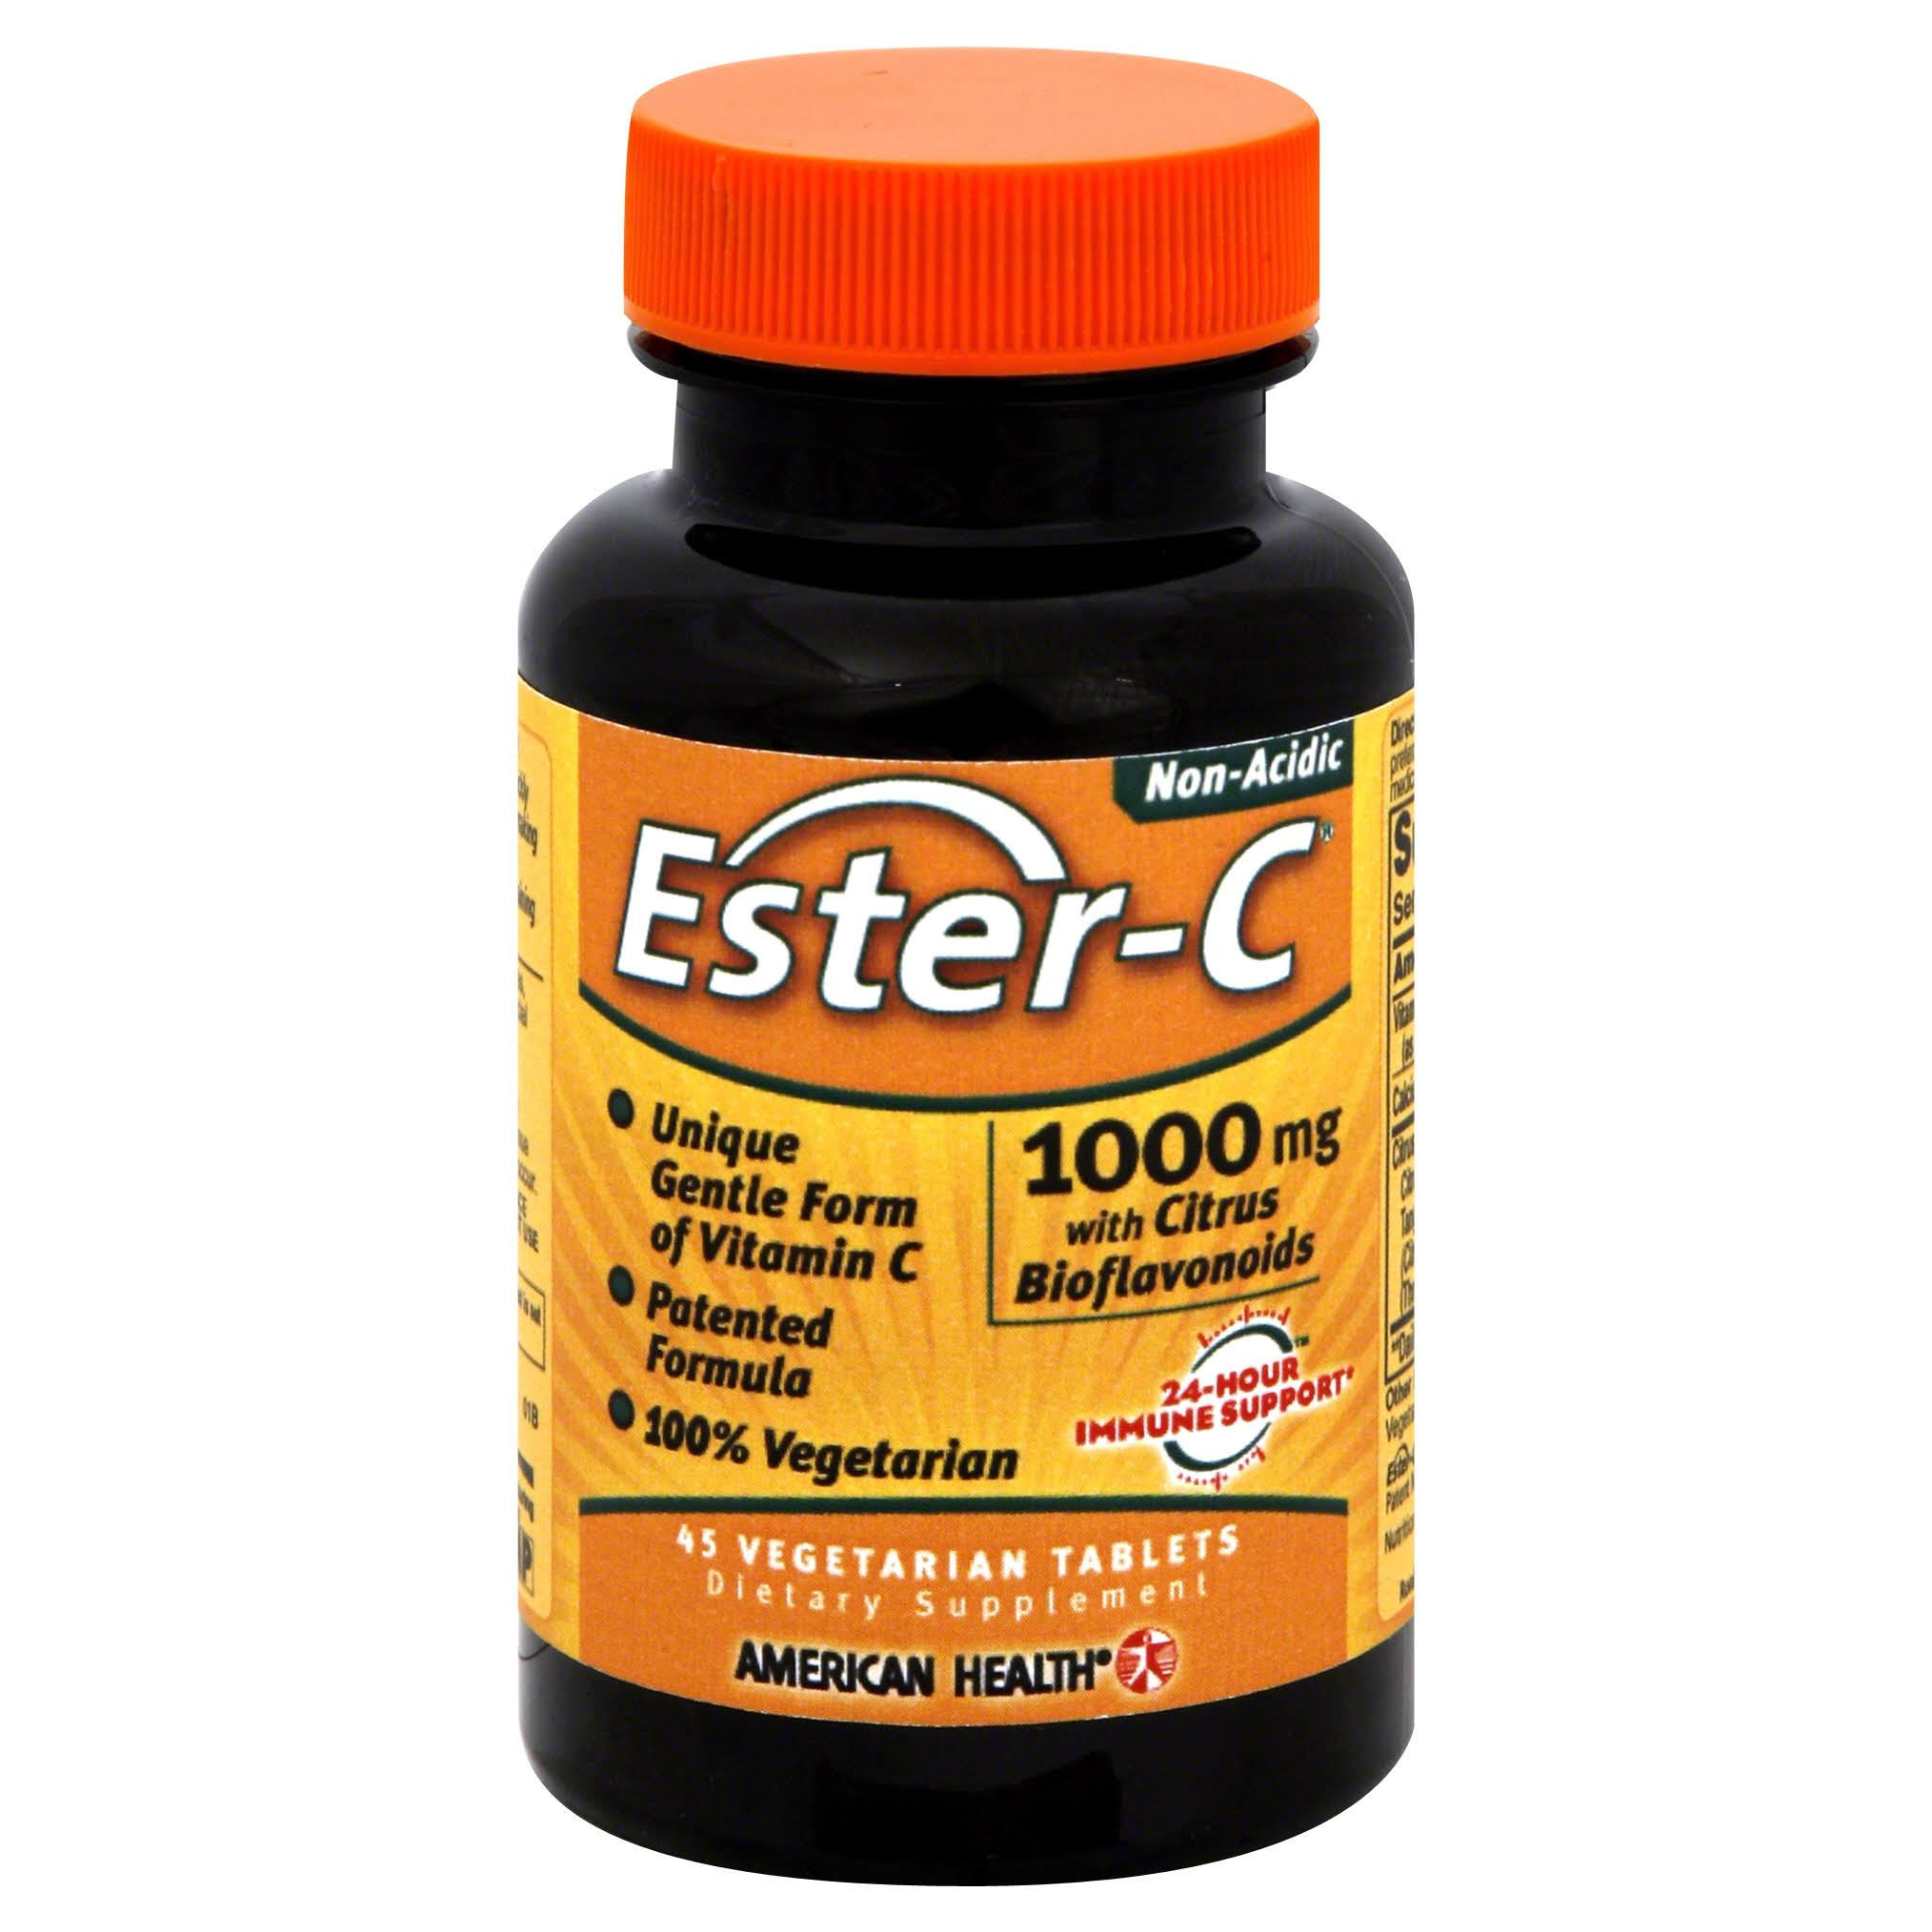 American Health Ester-C - 1000mg, 45 Vegetarian Tablets